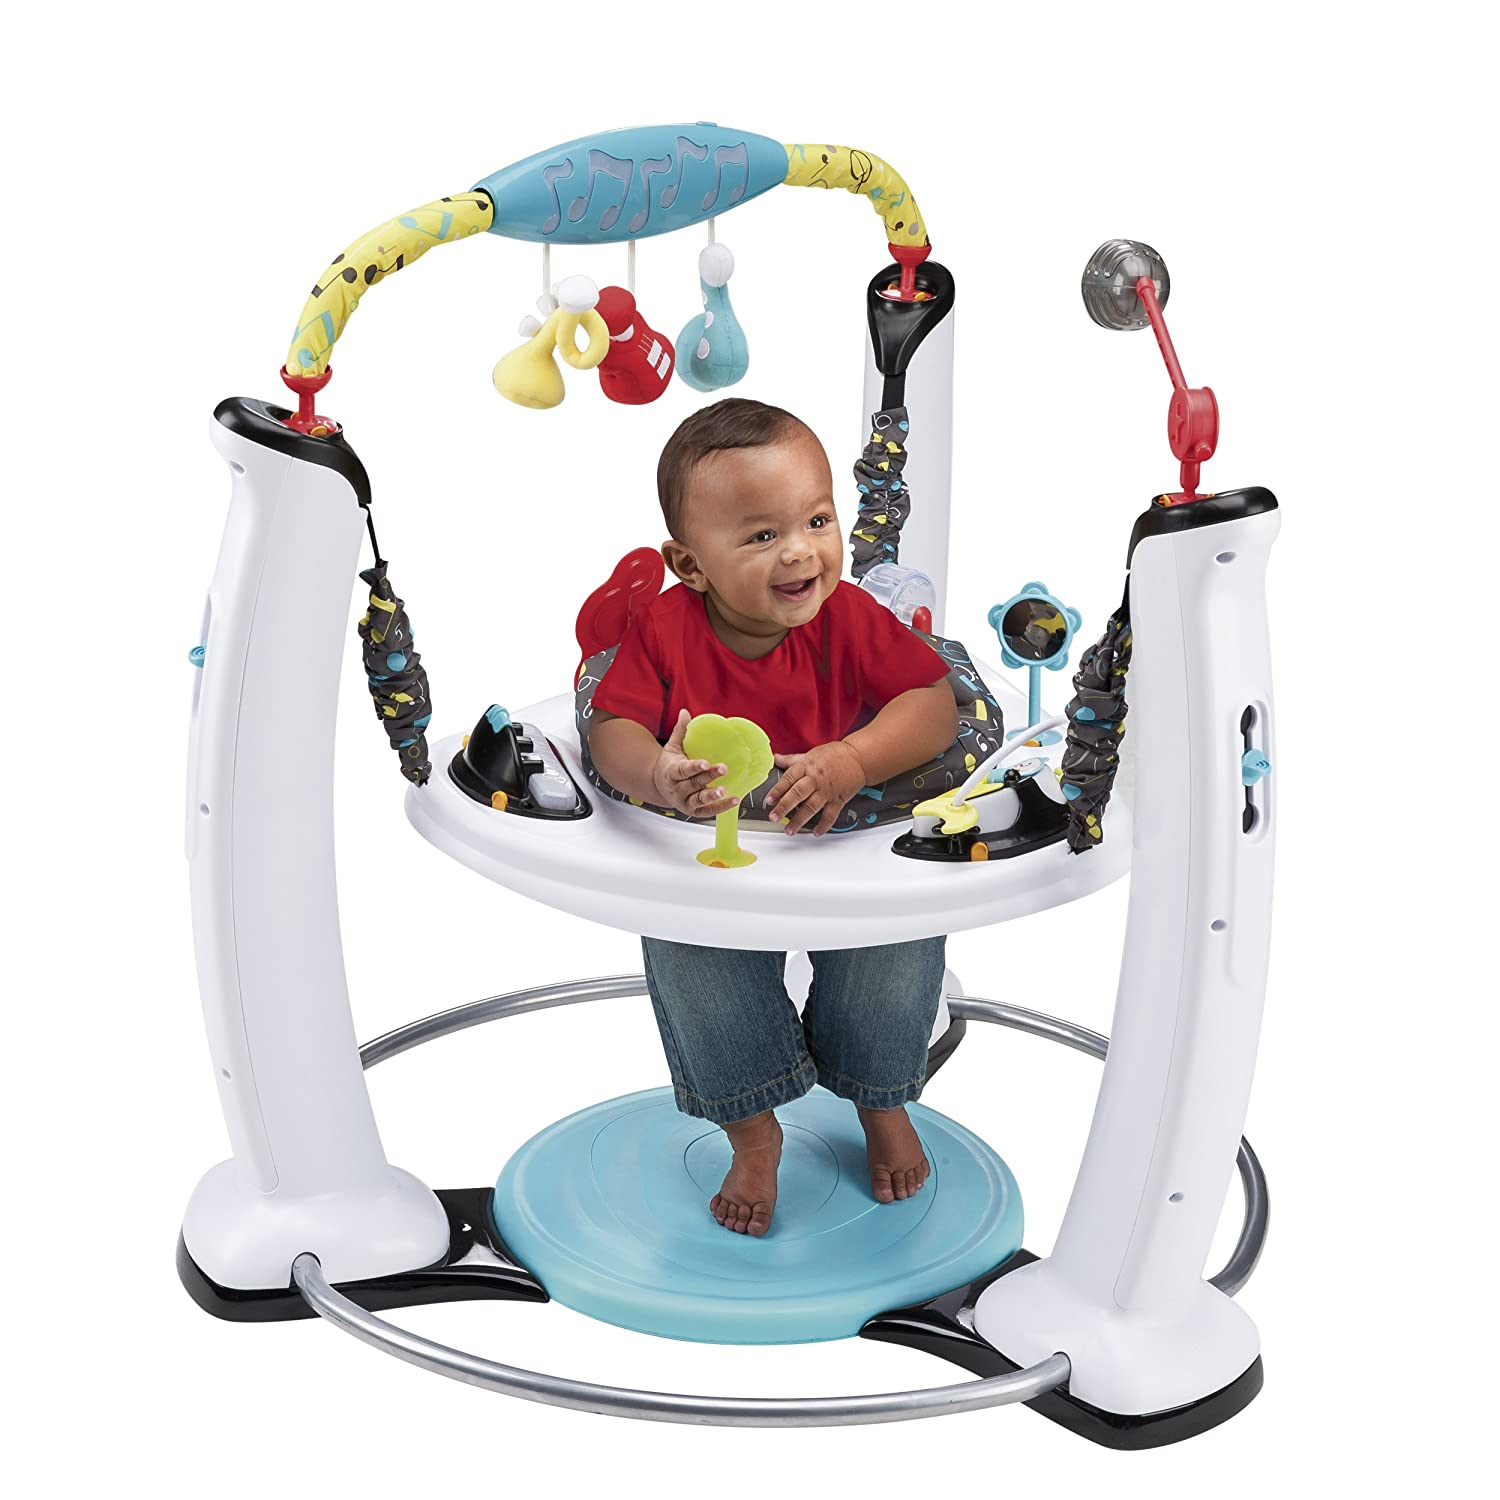 Babies love door and standing jumper toys that allow them to bounce up and down in the air, getting a little exercise and having fun. There are some of the favorite door and standing jumpers from Babylist.